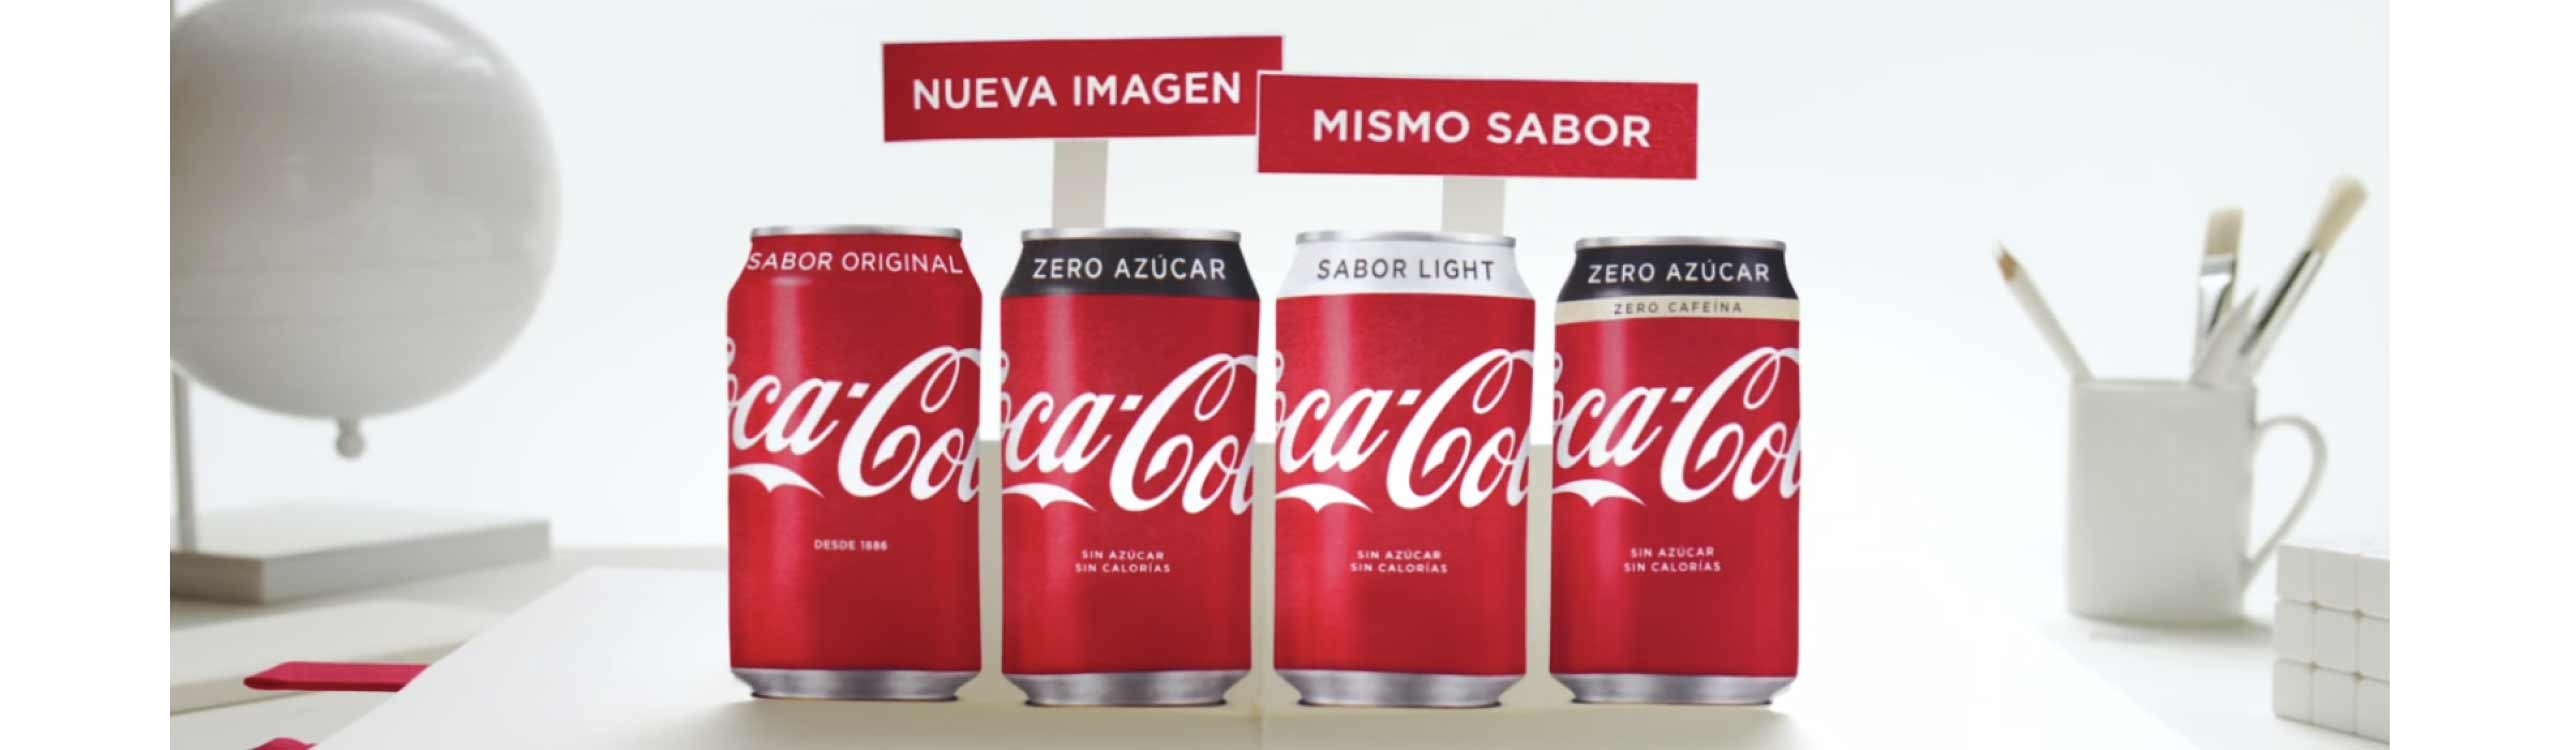 coca-cola estrena nuevo packaging destacado